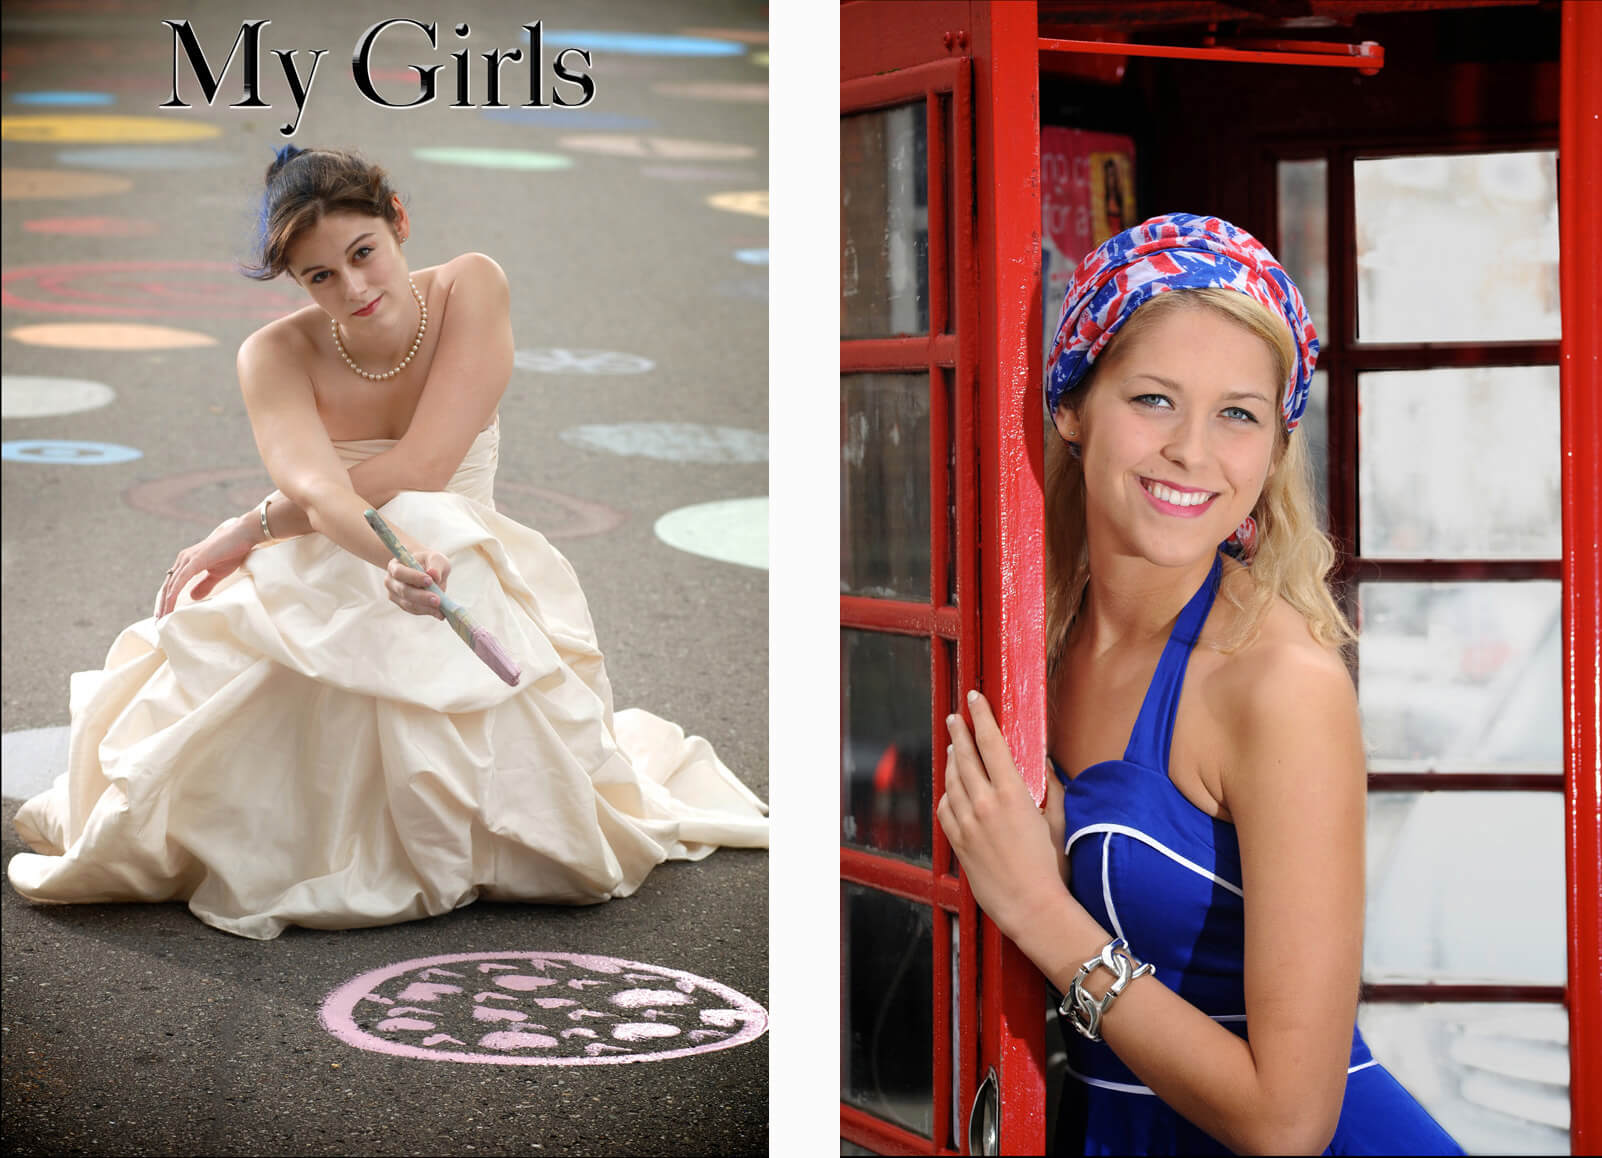 Last, but not least, I�����������������ve included a senior photo of each of my wonderful Troy High school graduates. They are my favorite favorite girls in the world.